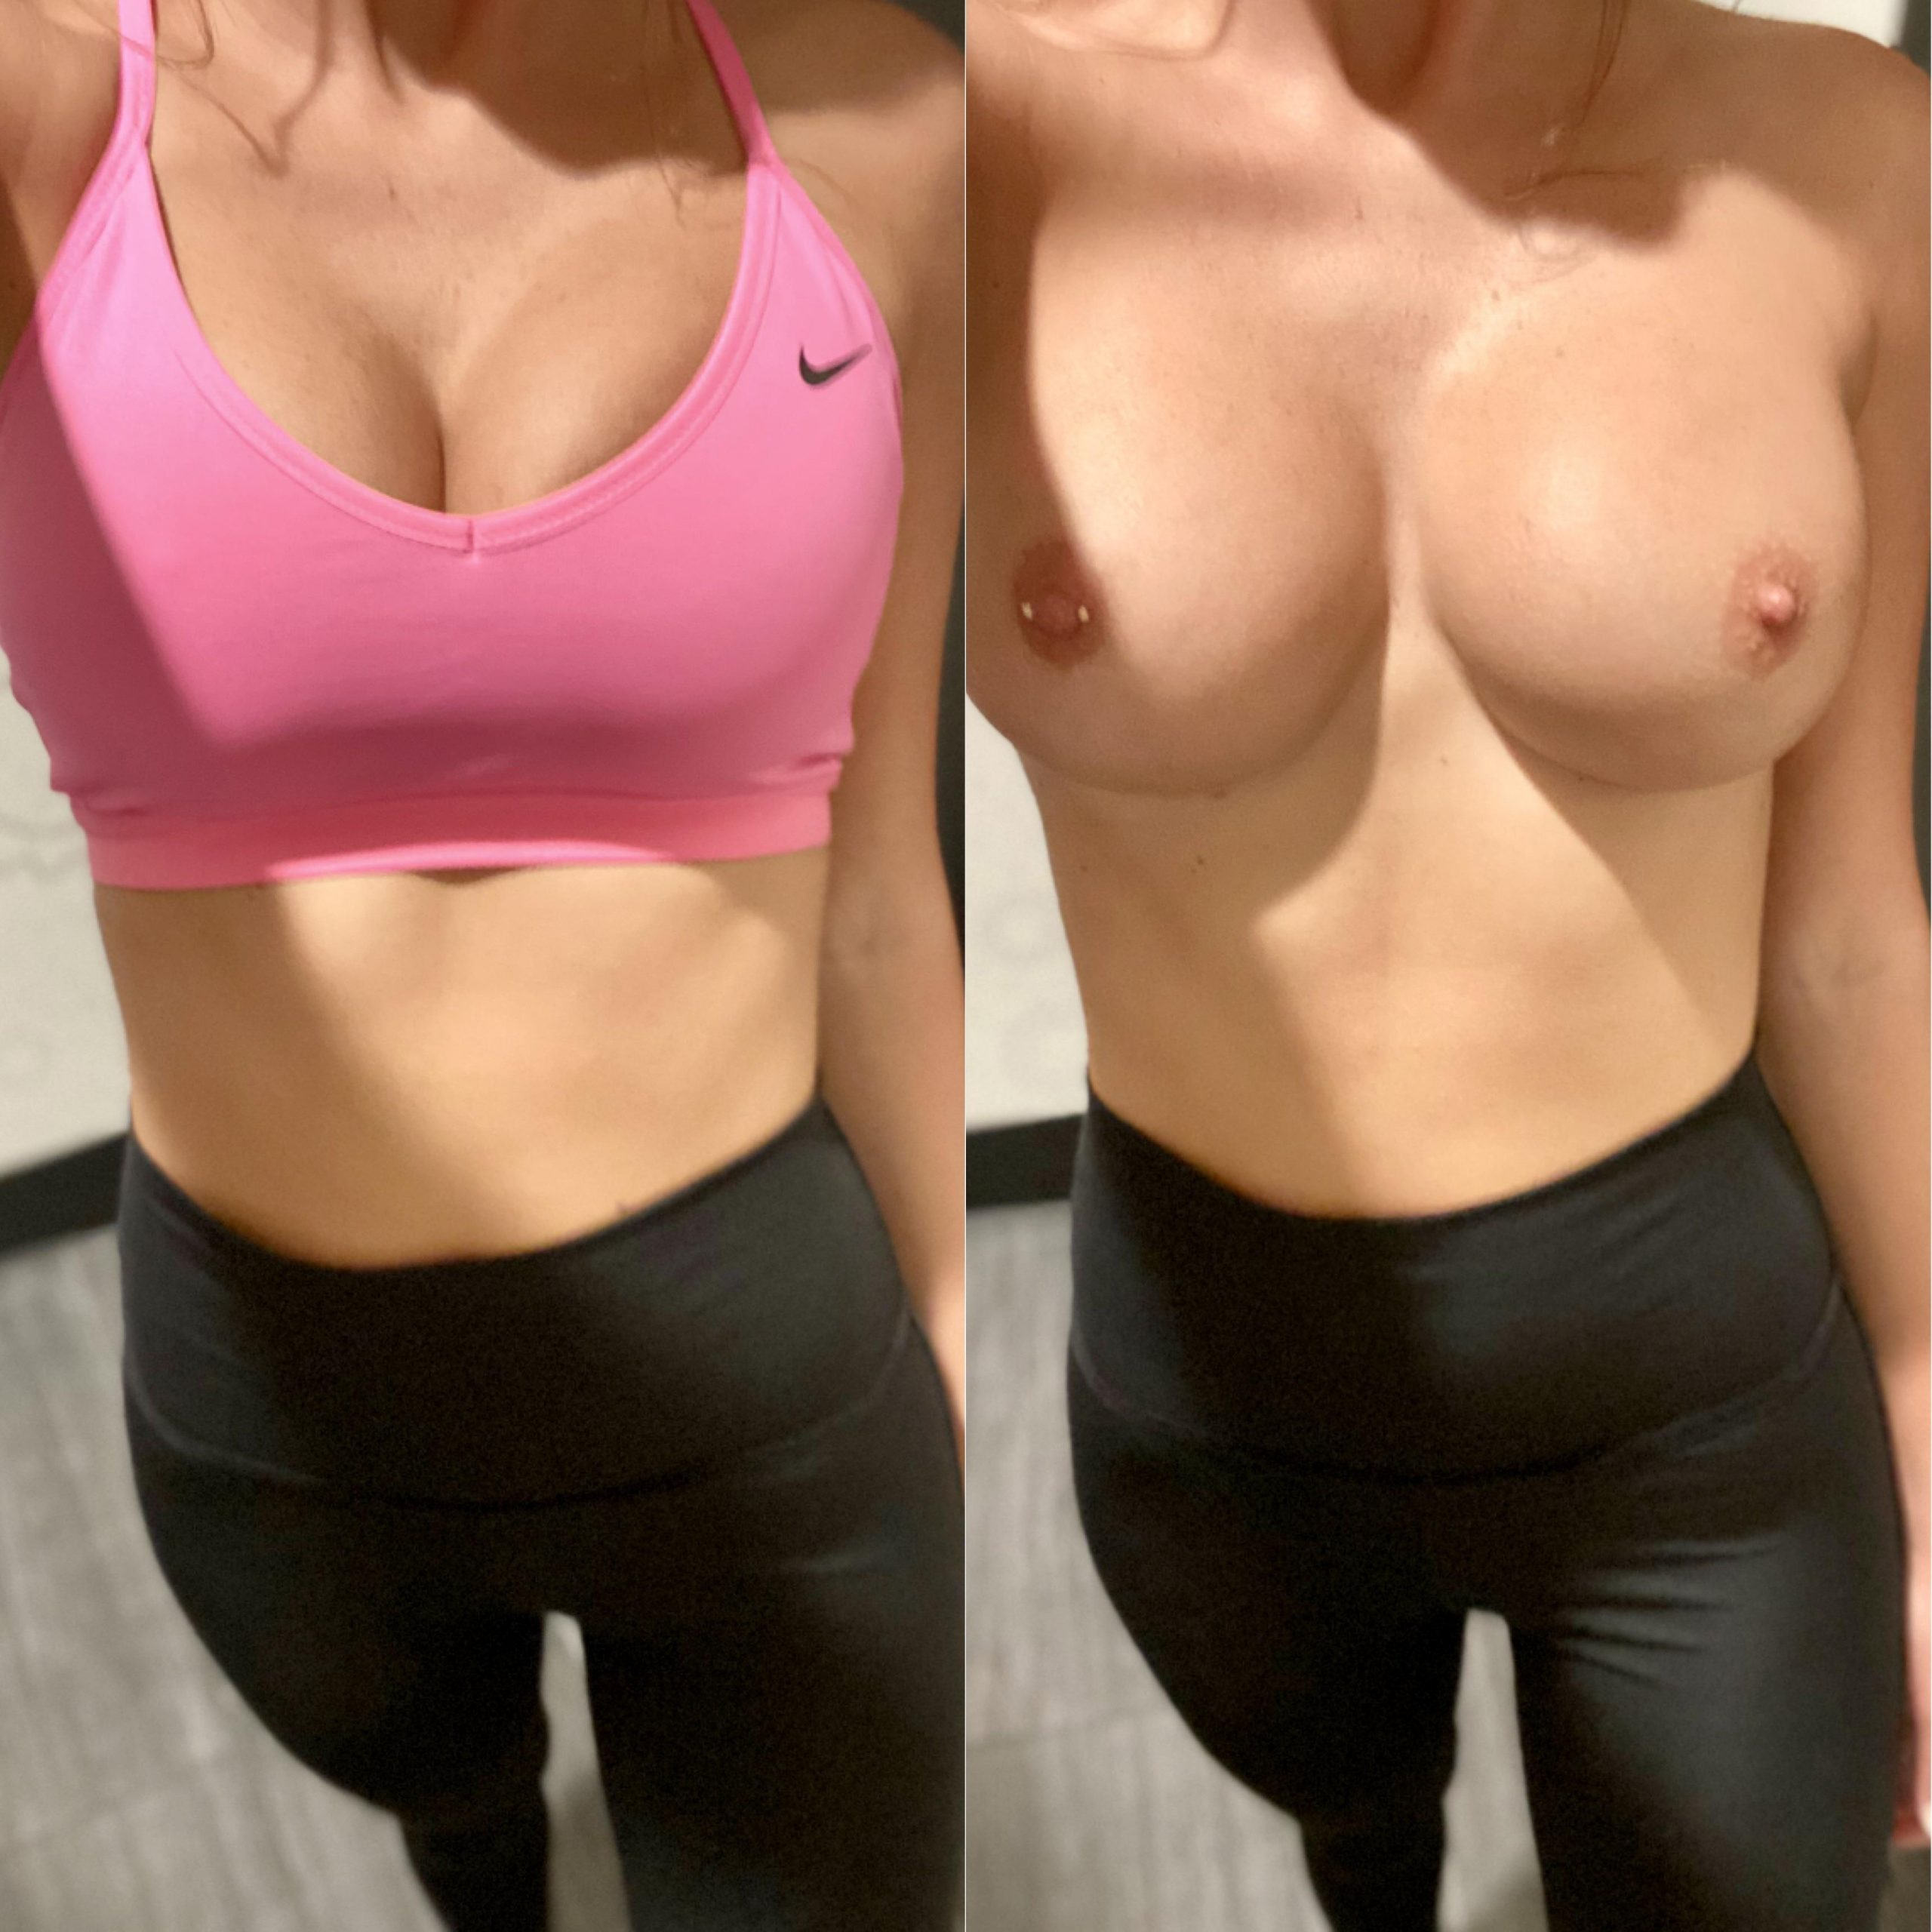 Sports Bras Can Be So…..restricting 😝🤍